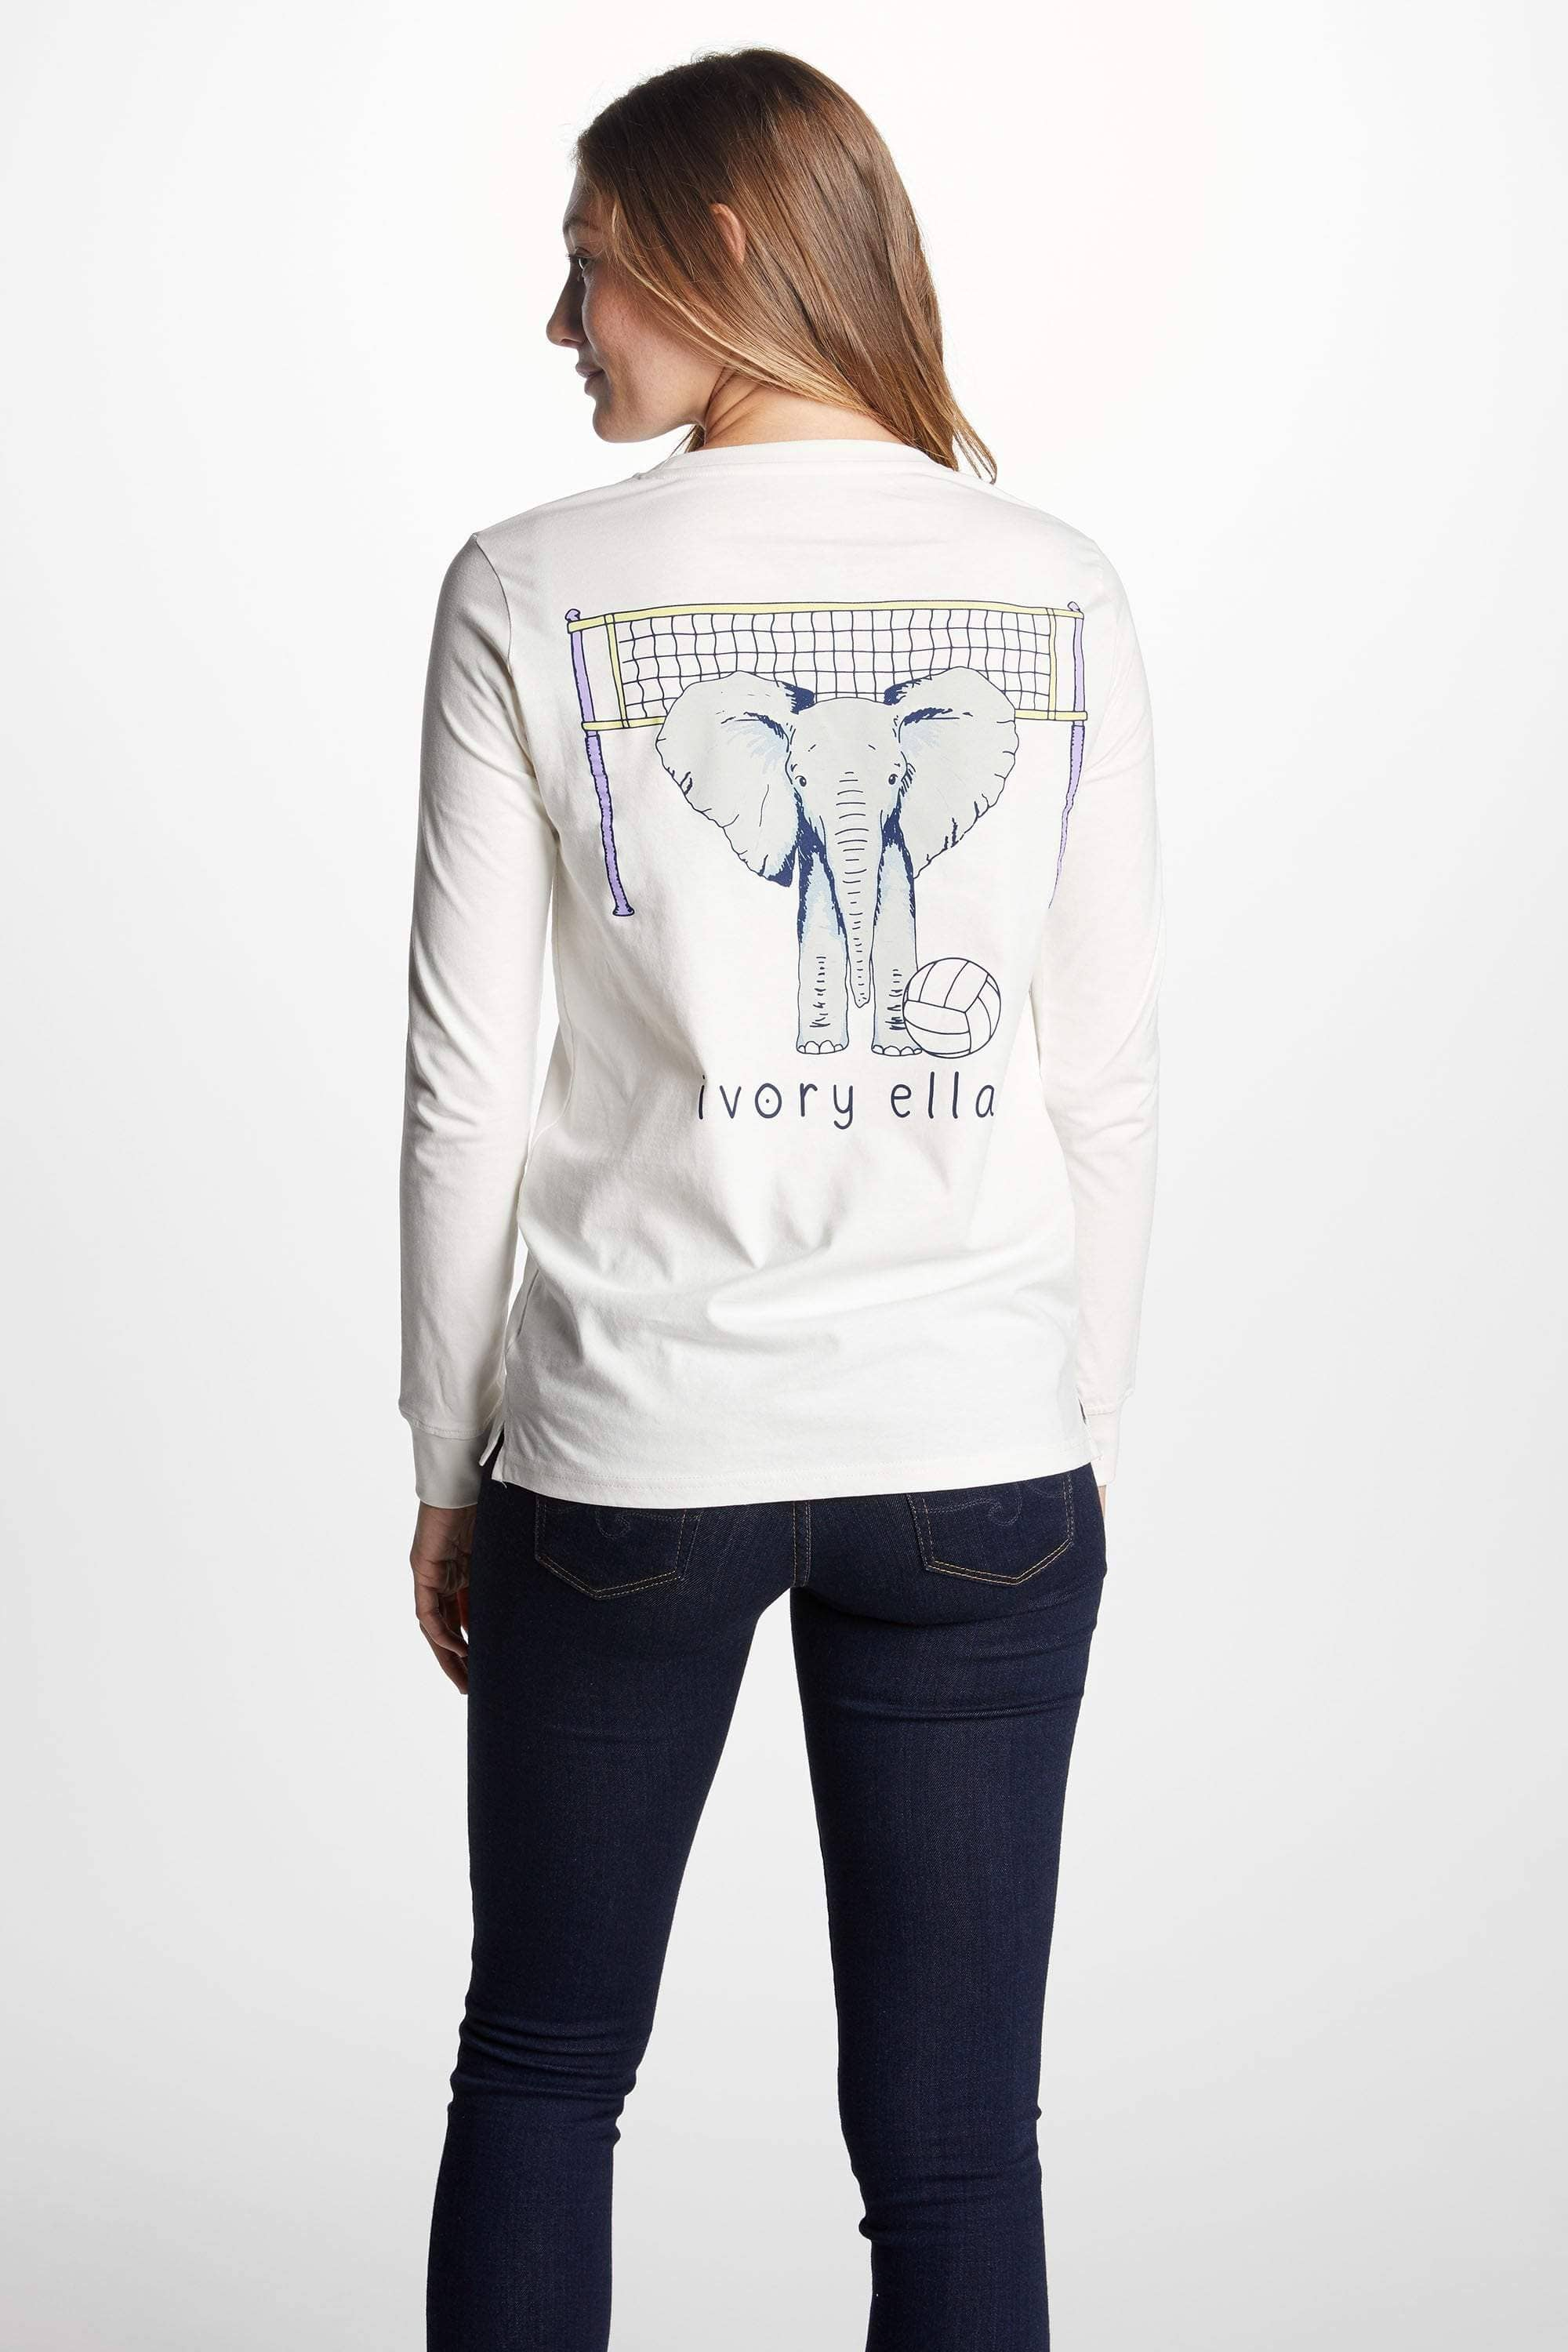 Ivory Ella Women's Long Sleeve Shirts XXS Ella Fit New Volleyball Tee